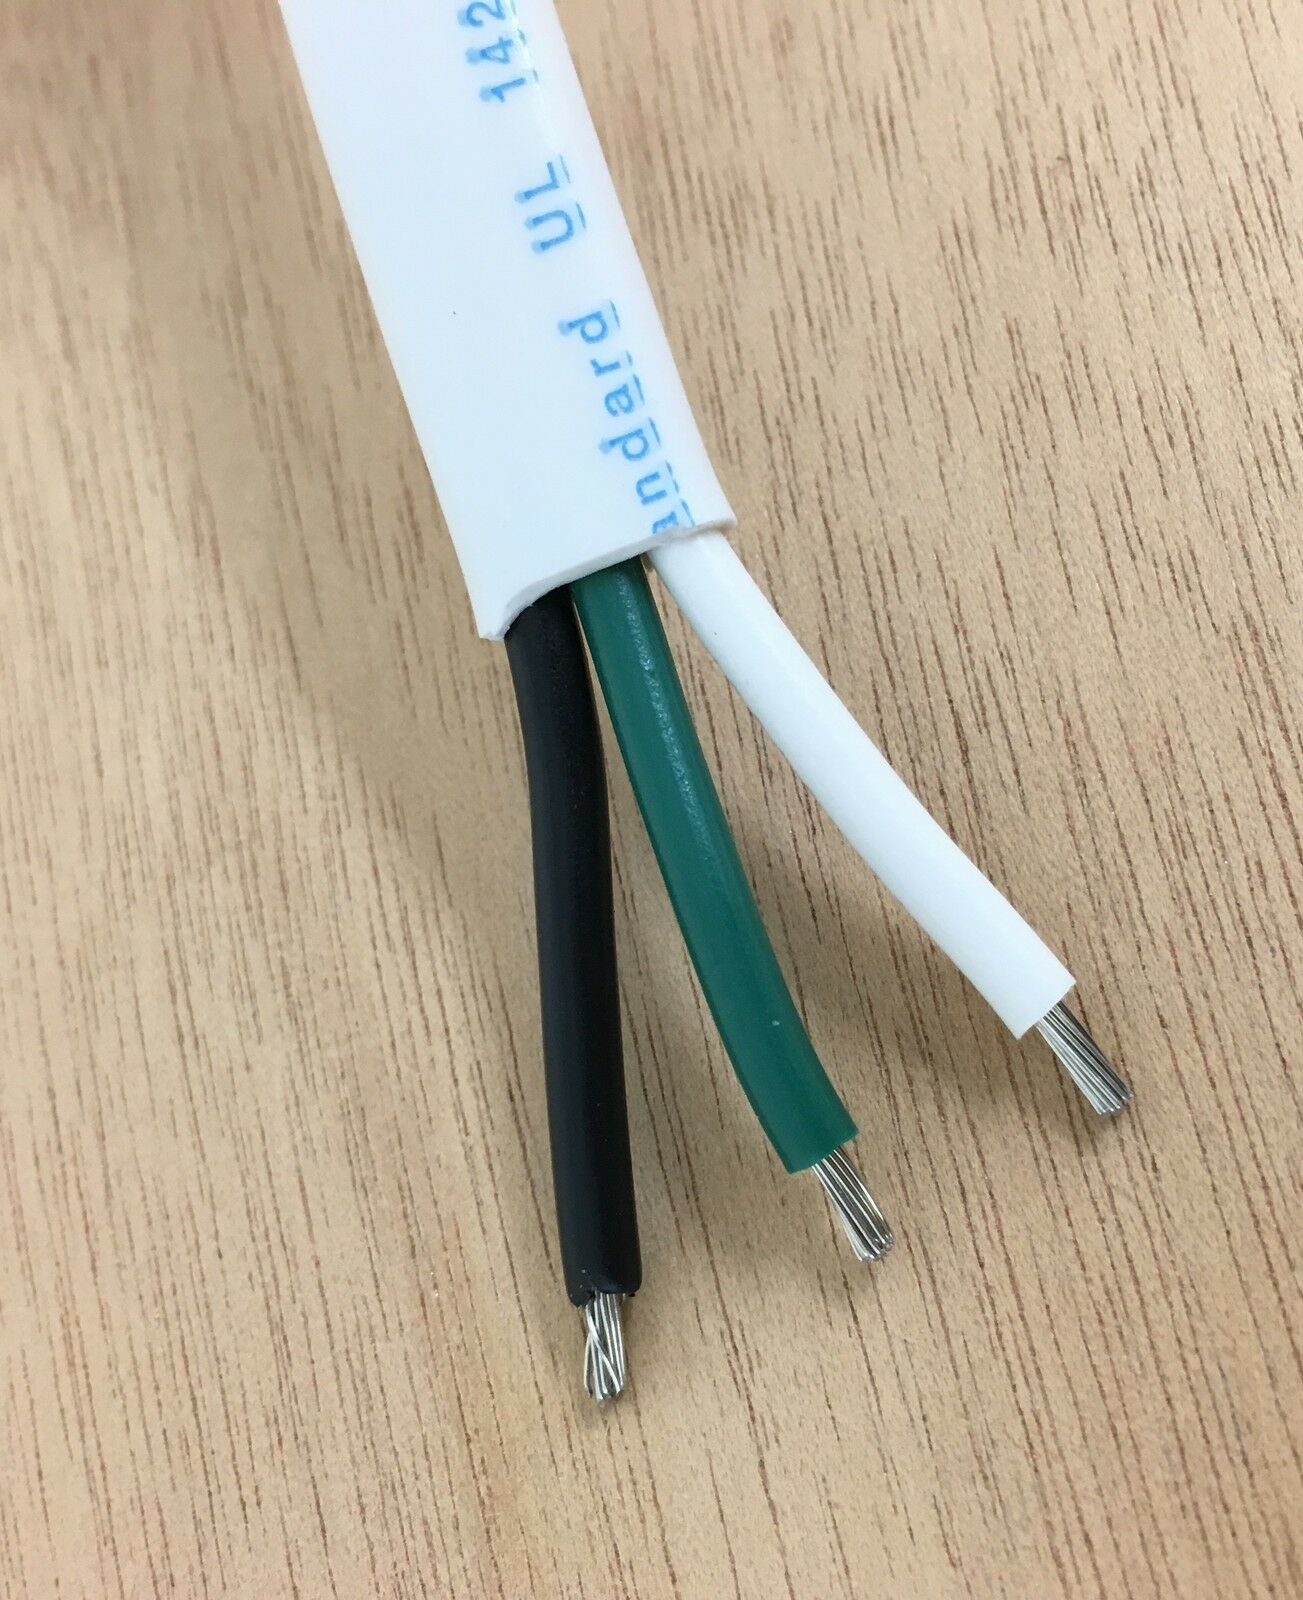 14 AWG 3 Conductor Wire, Marine Grade Boat Cable with White overall jacket  with Black, White and Green conductors inside used for wiring AC  applications.